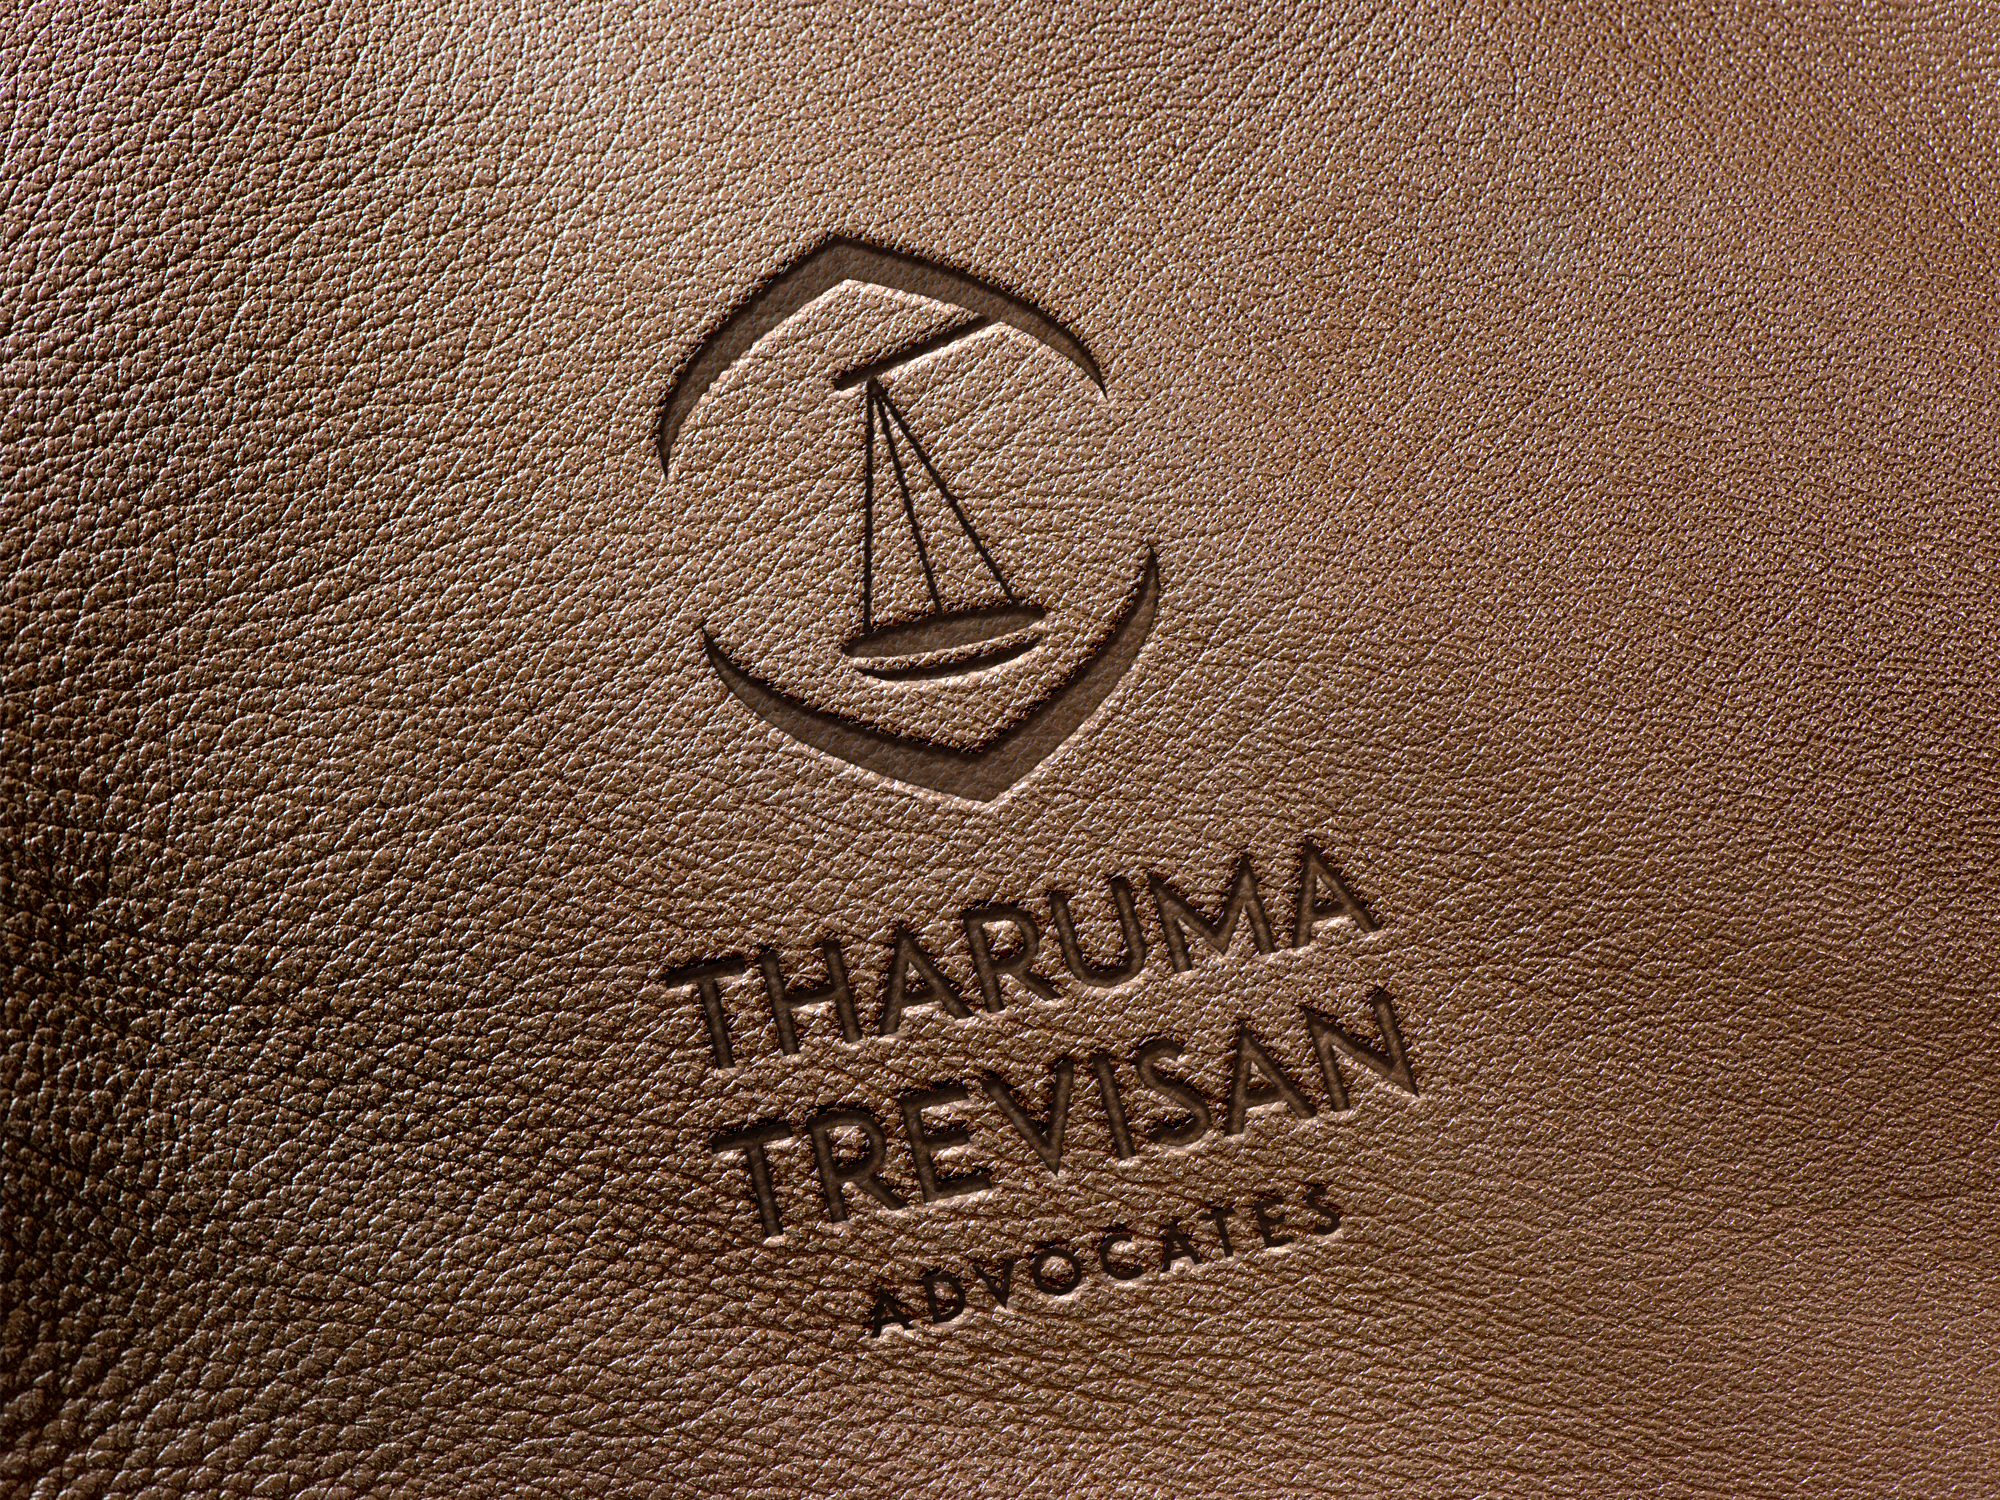 tharuma-trevisan-logo-leather-mock-up-02